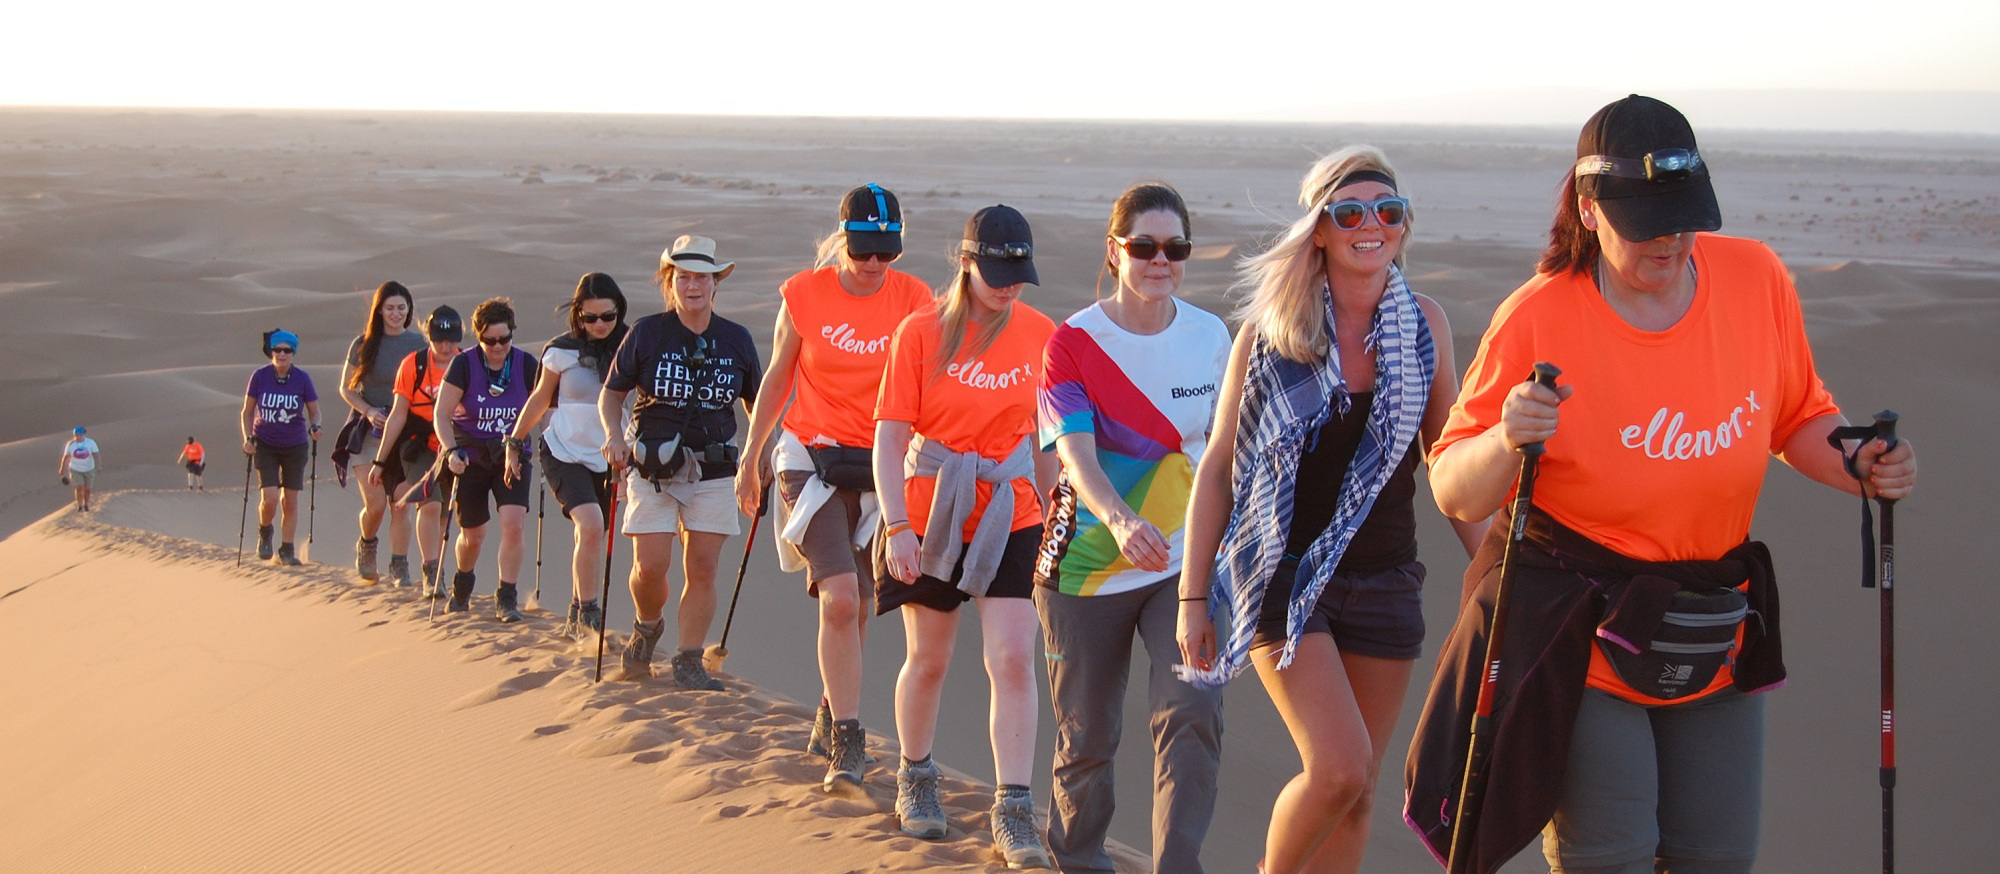 Why Sam trekked the Sahara for charity...